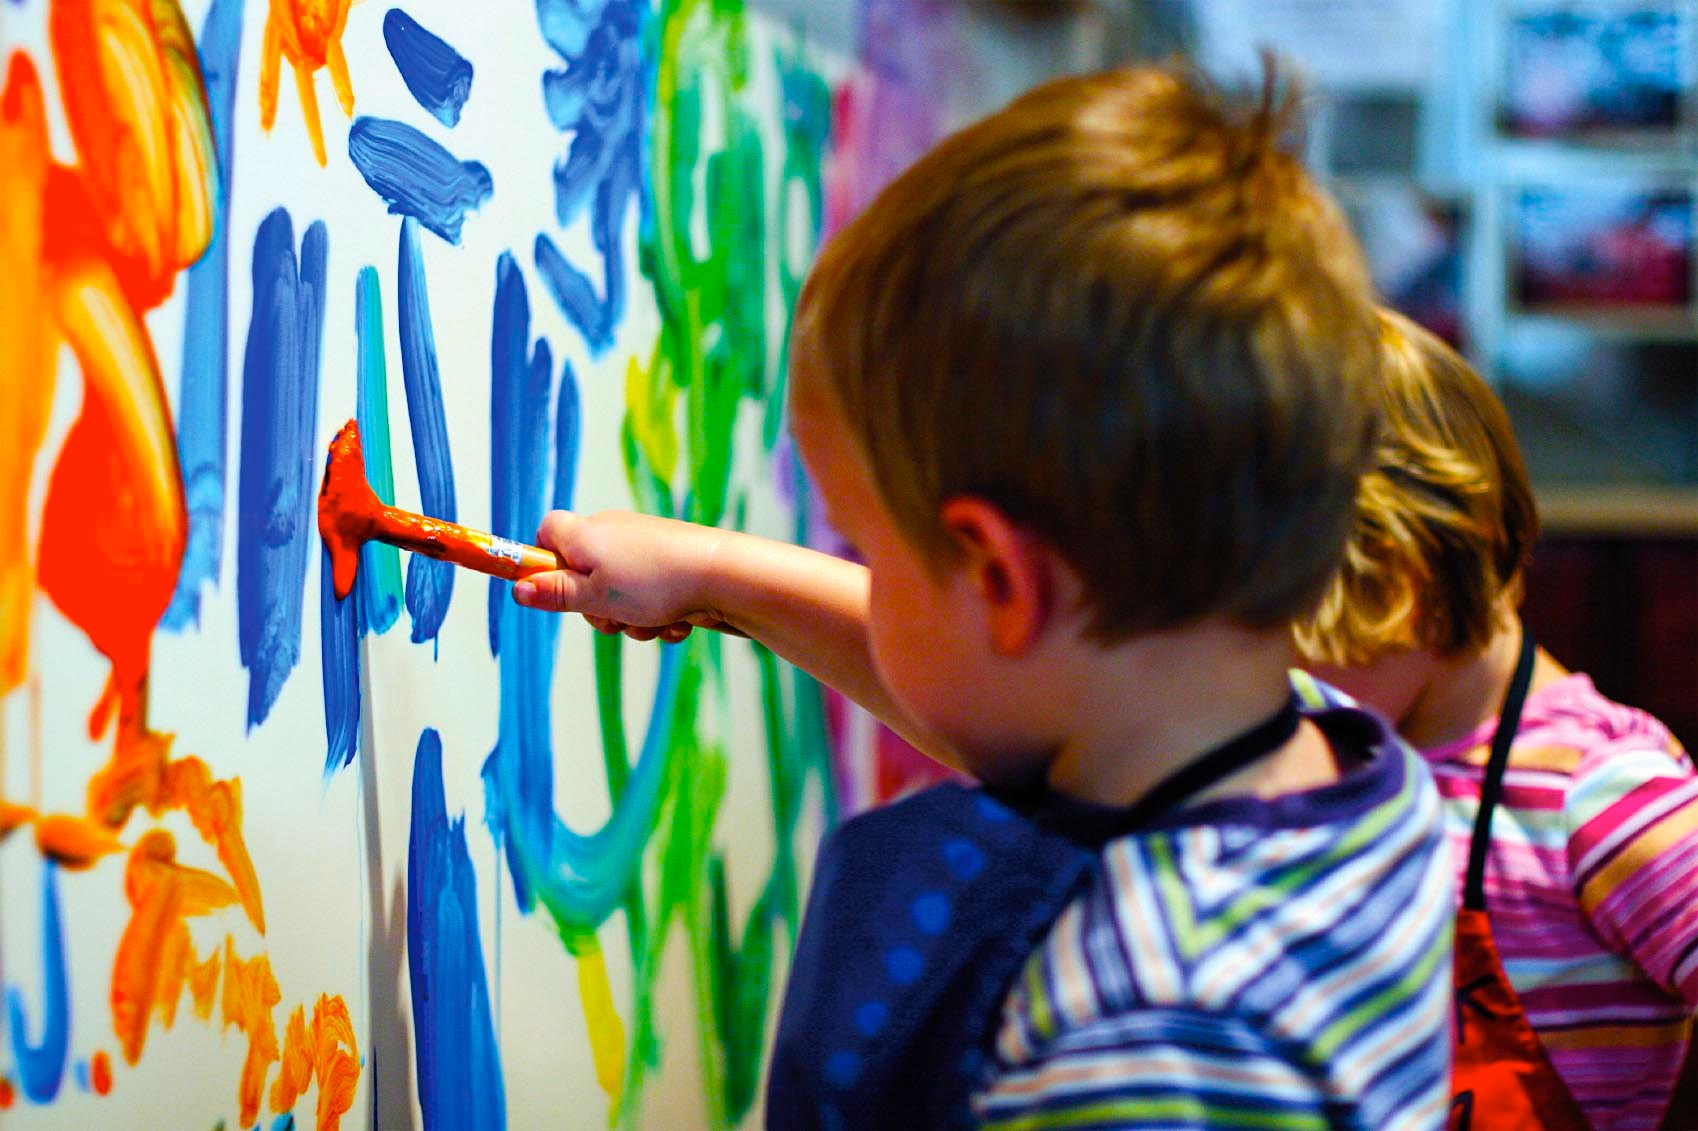 kinderclub - Kids Pictures To Paint